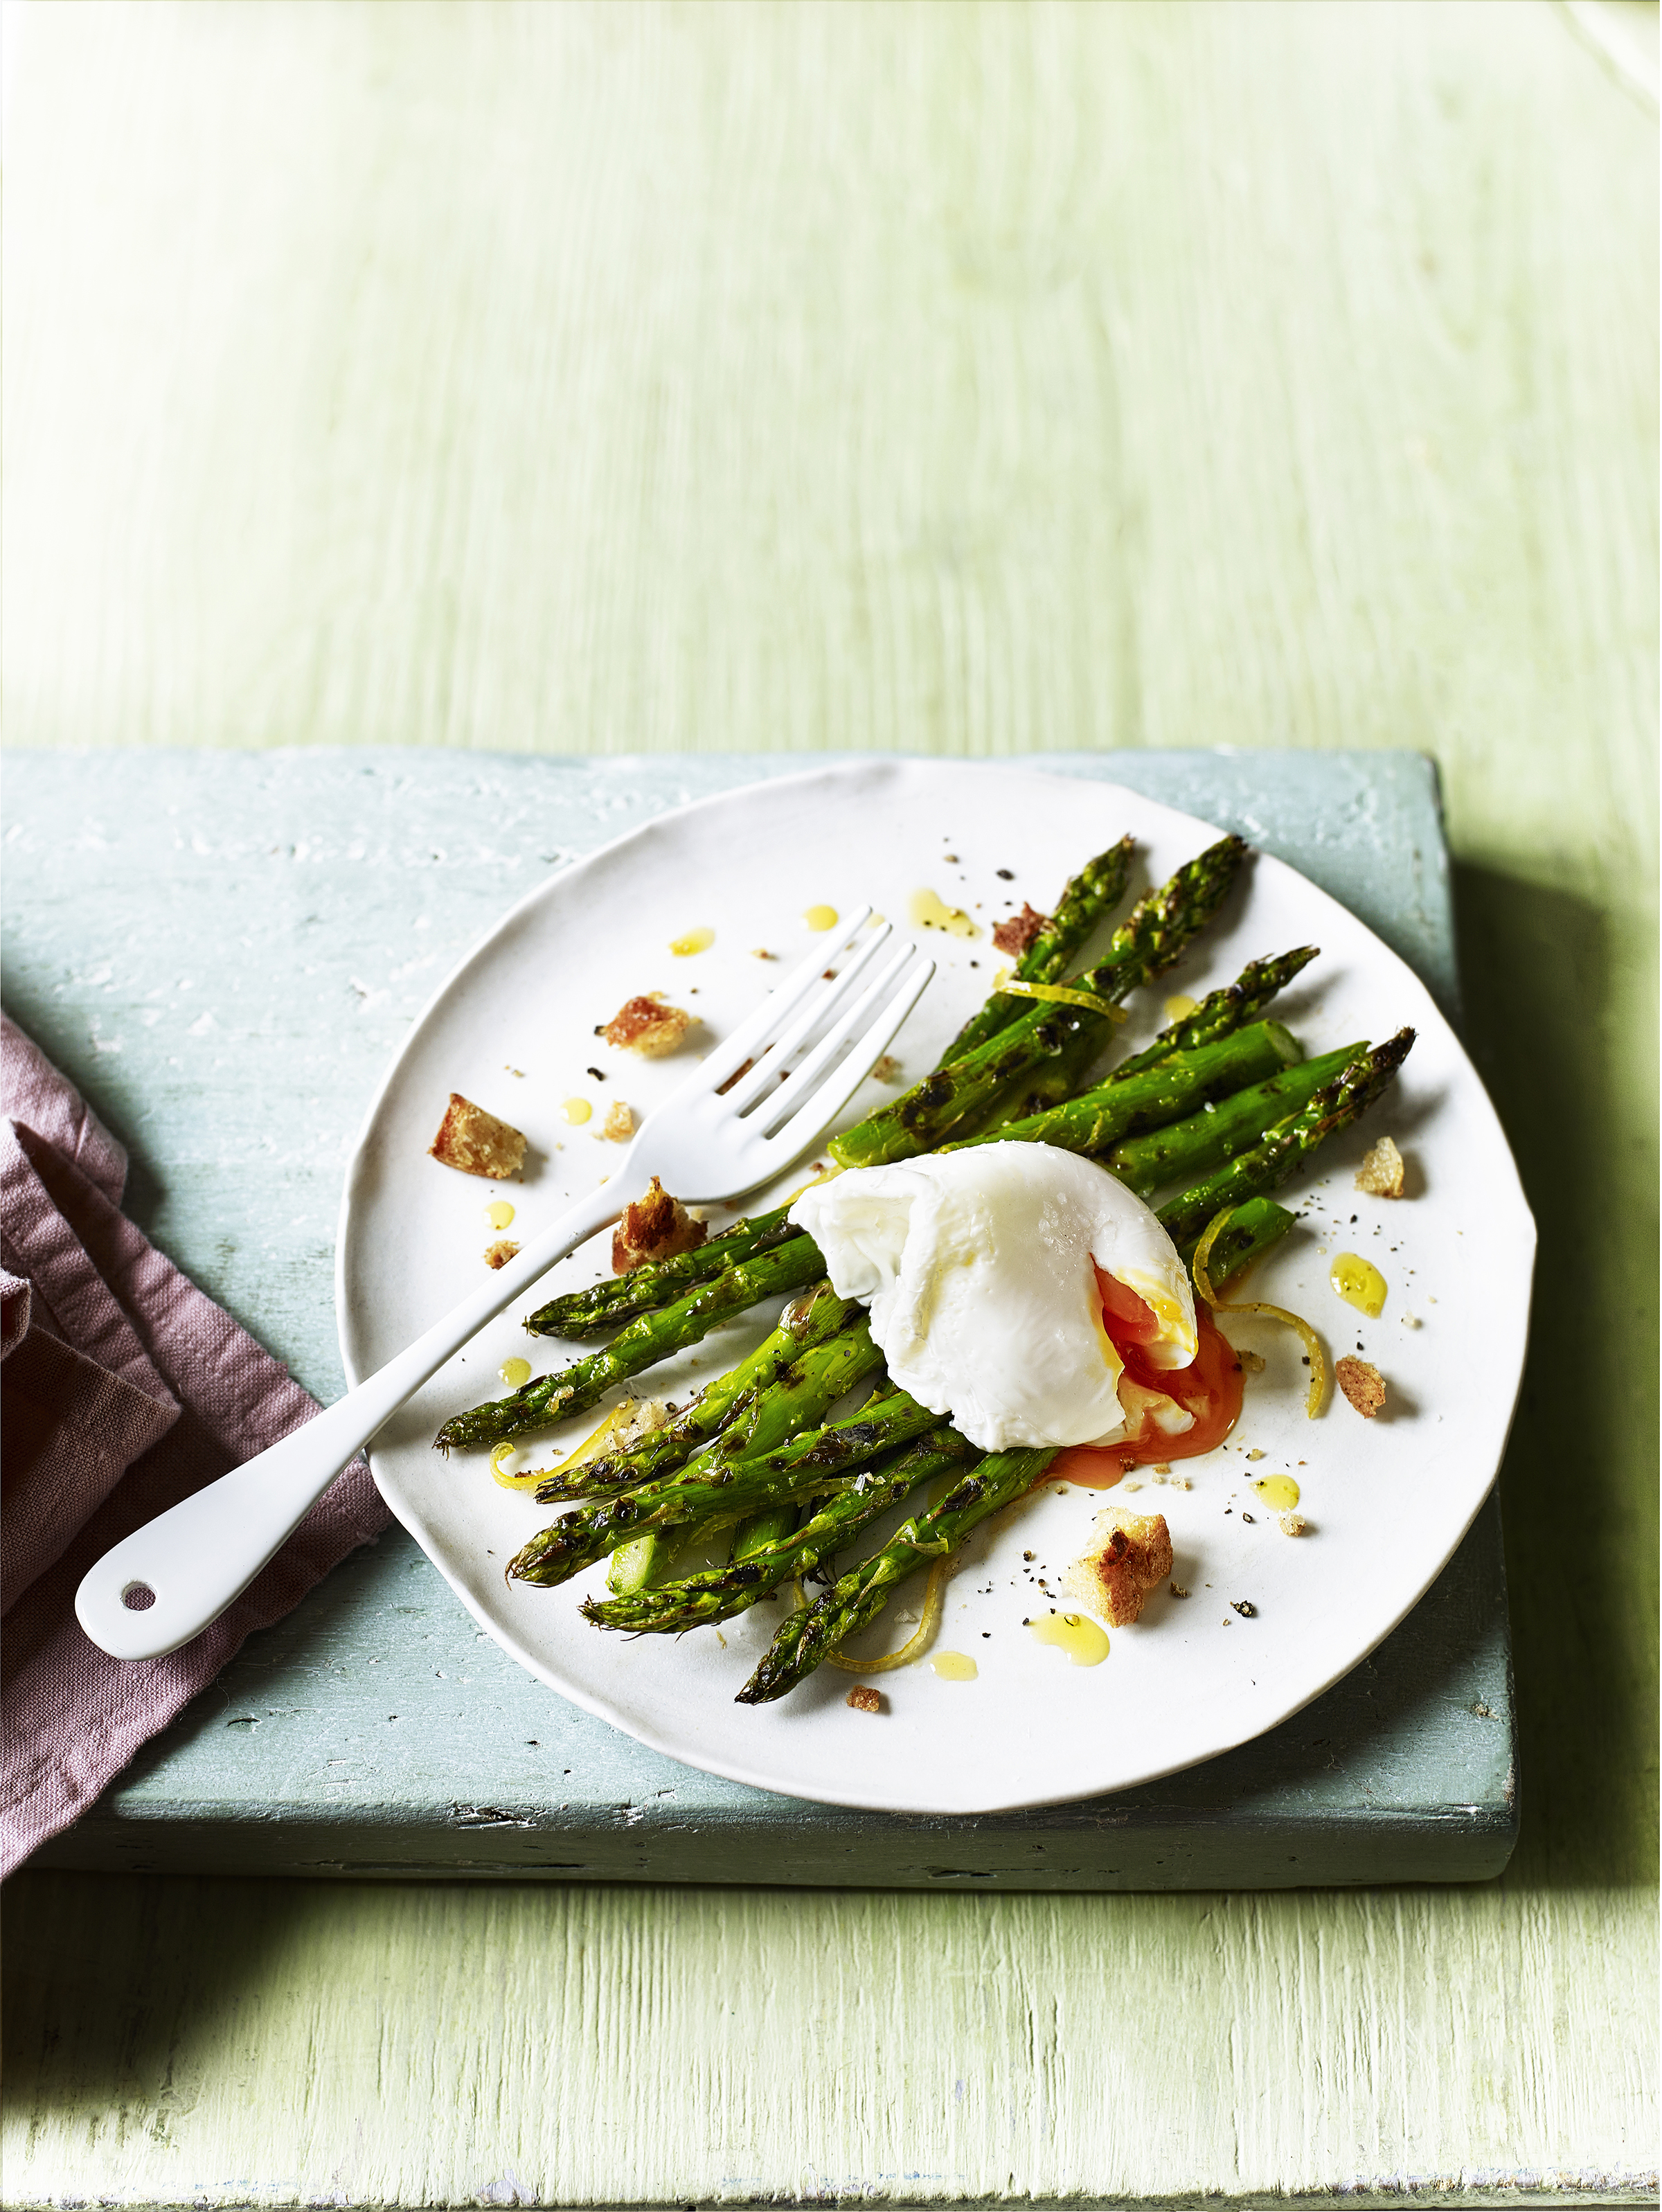 Waitrose Food Magazine  PHOTOGRAPHER: KRIS KIRKHAM